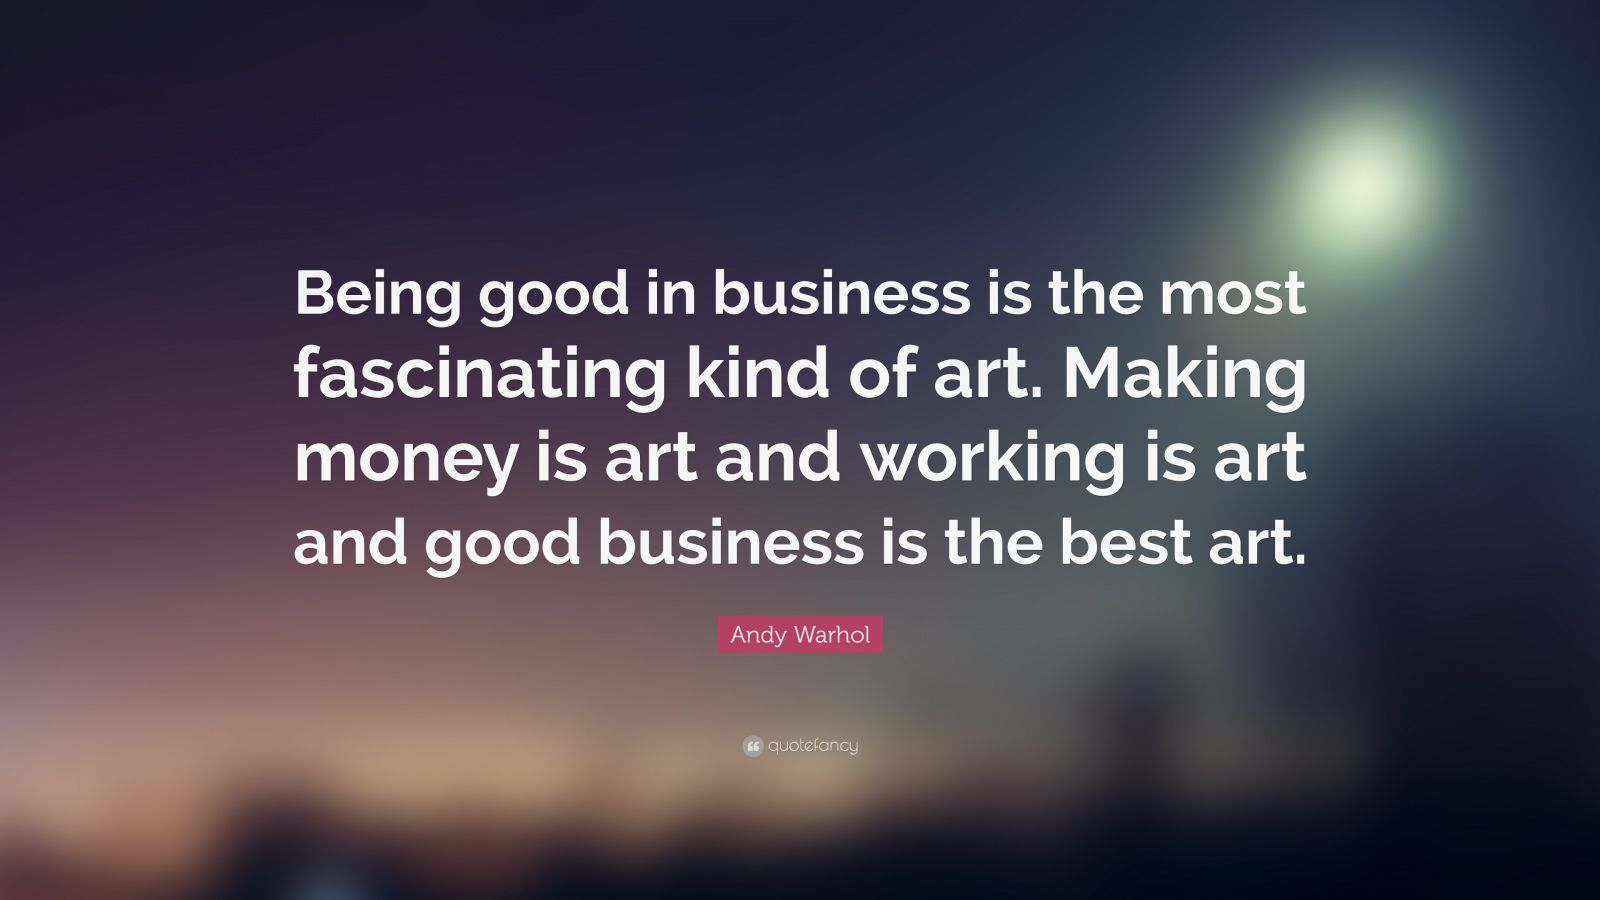 """Andy Warhol Quote: """"Being good in business is the most fascinating kind of art. Making money is art and working is art and good business is the best art."""""""